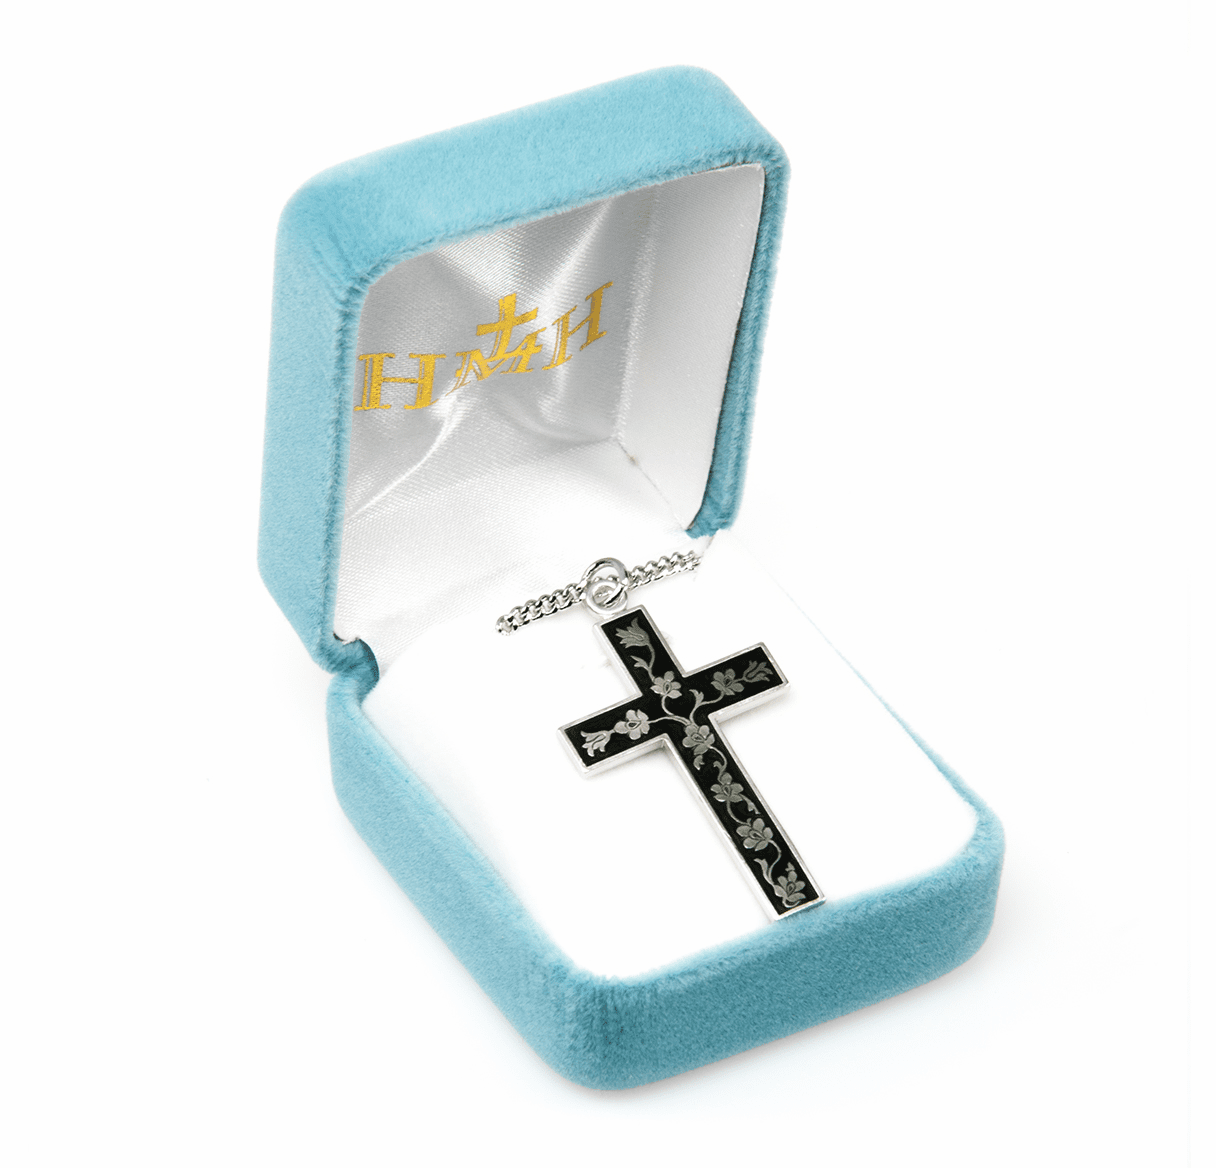 HMH Religious Enameled Christian Cross Necklaces